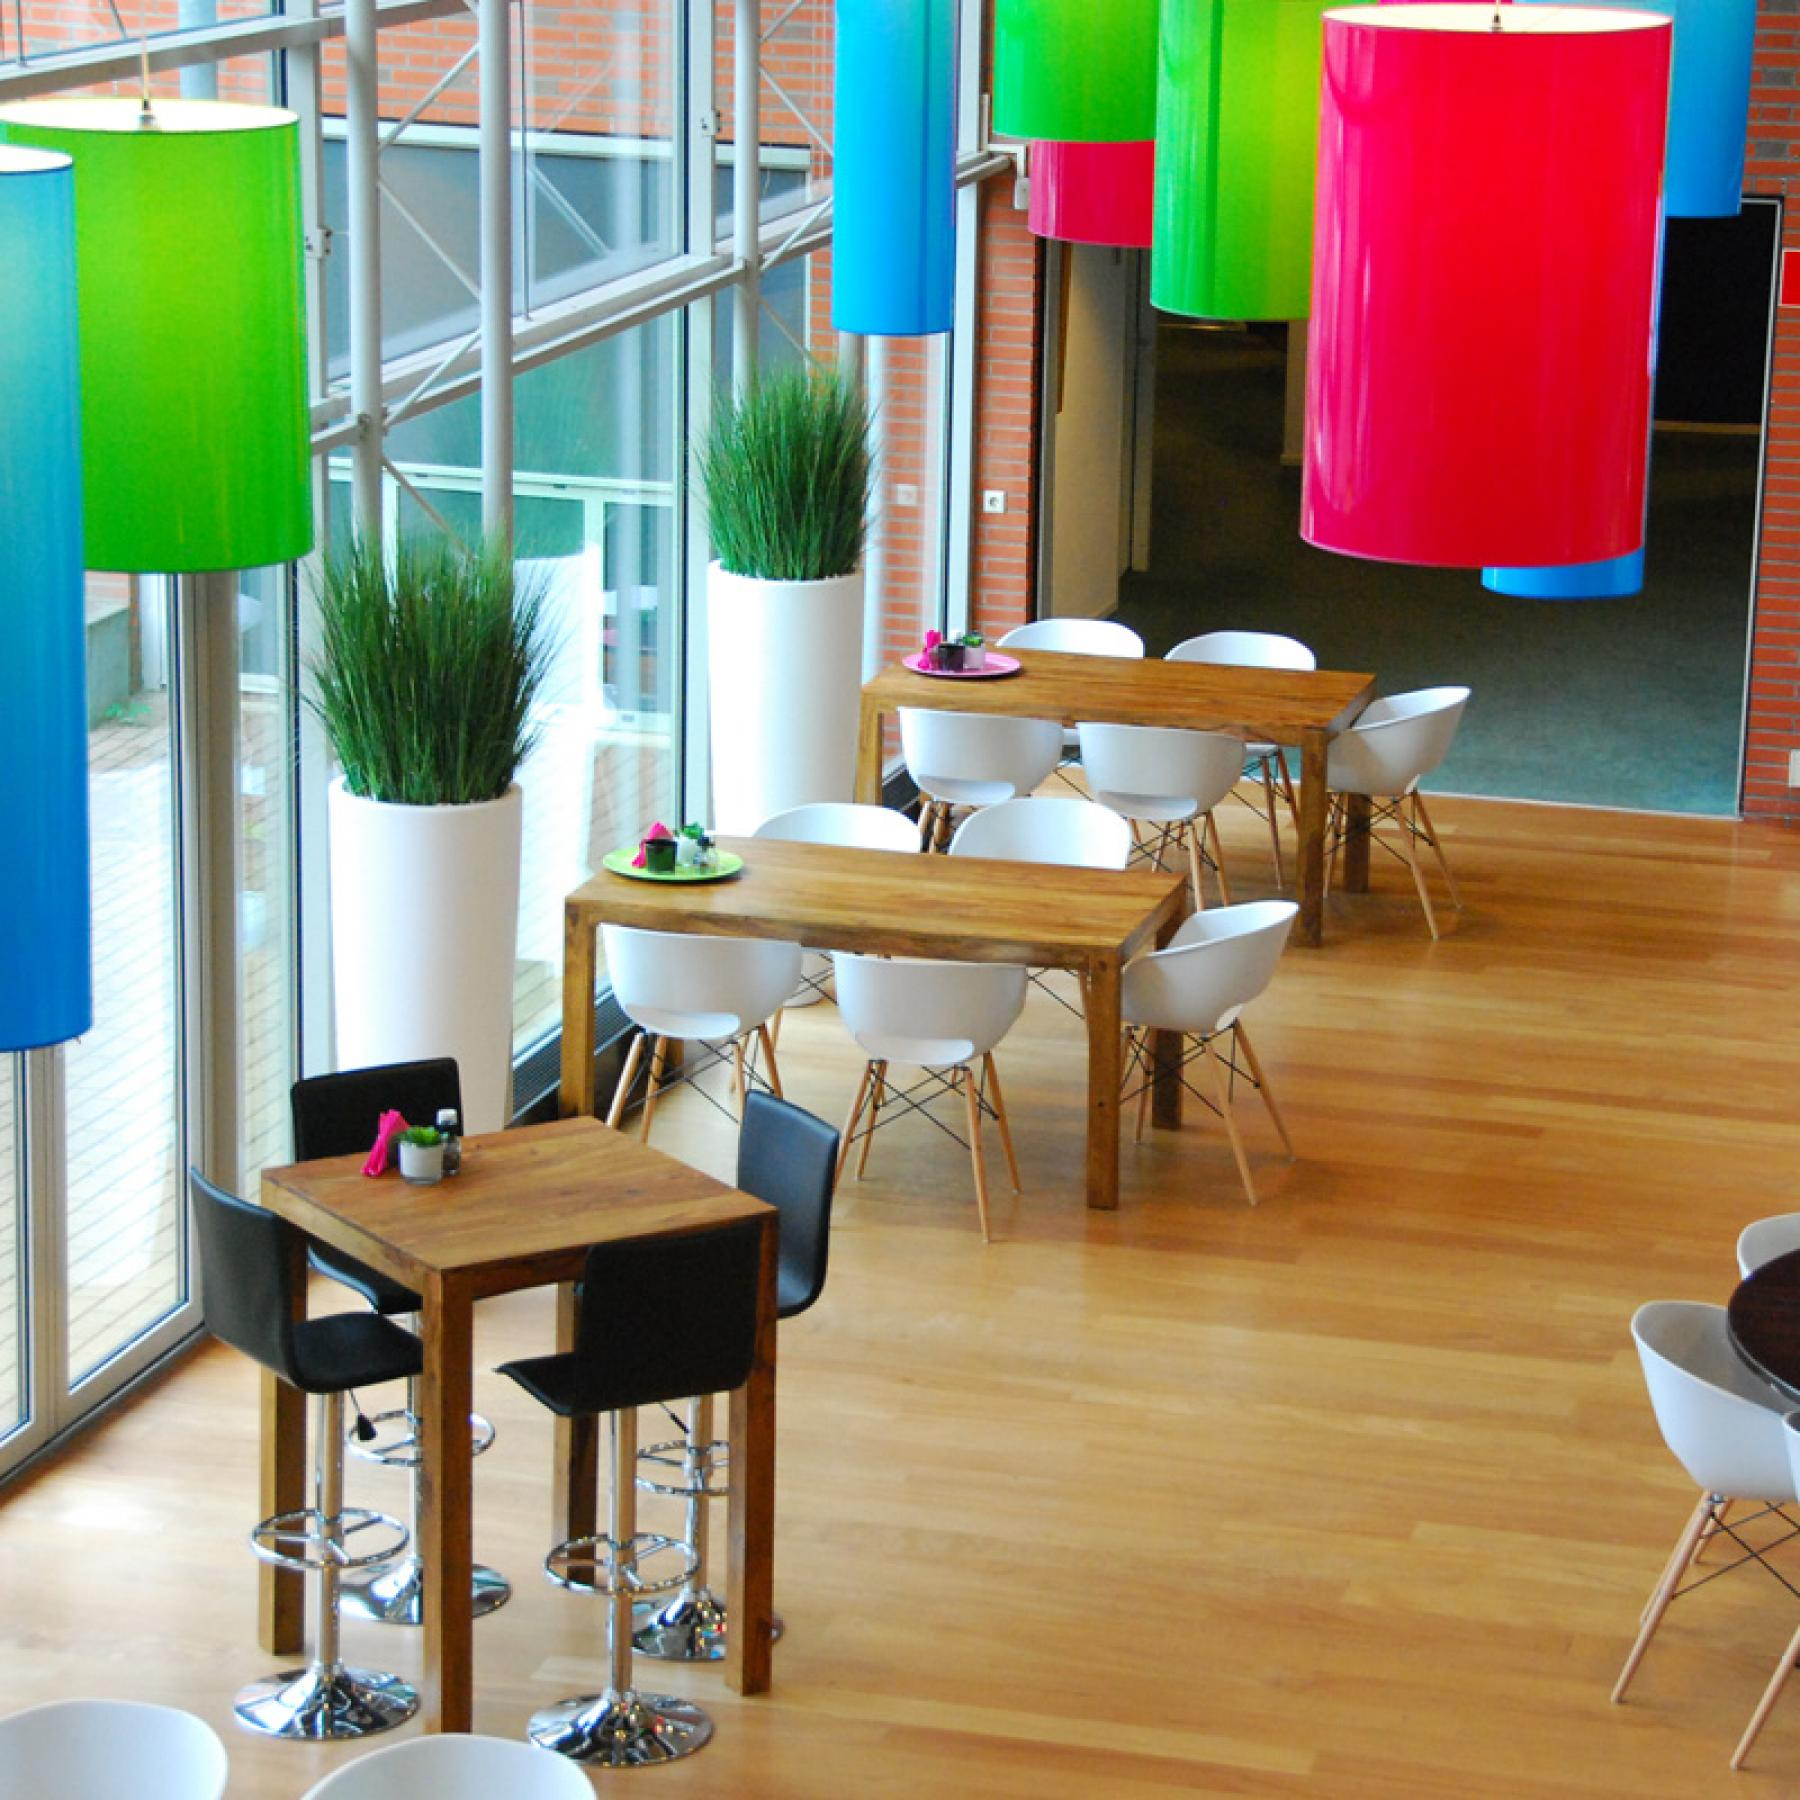 color business center kantoor huren almere amstelveen